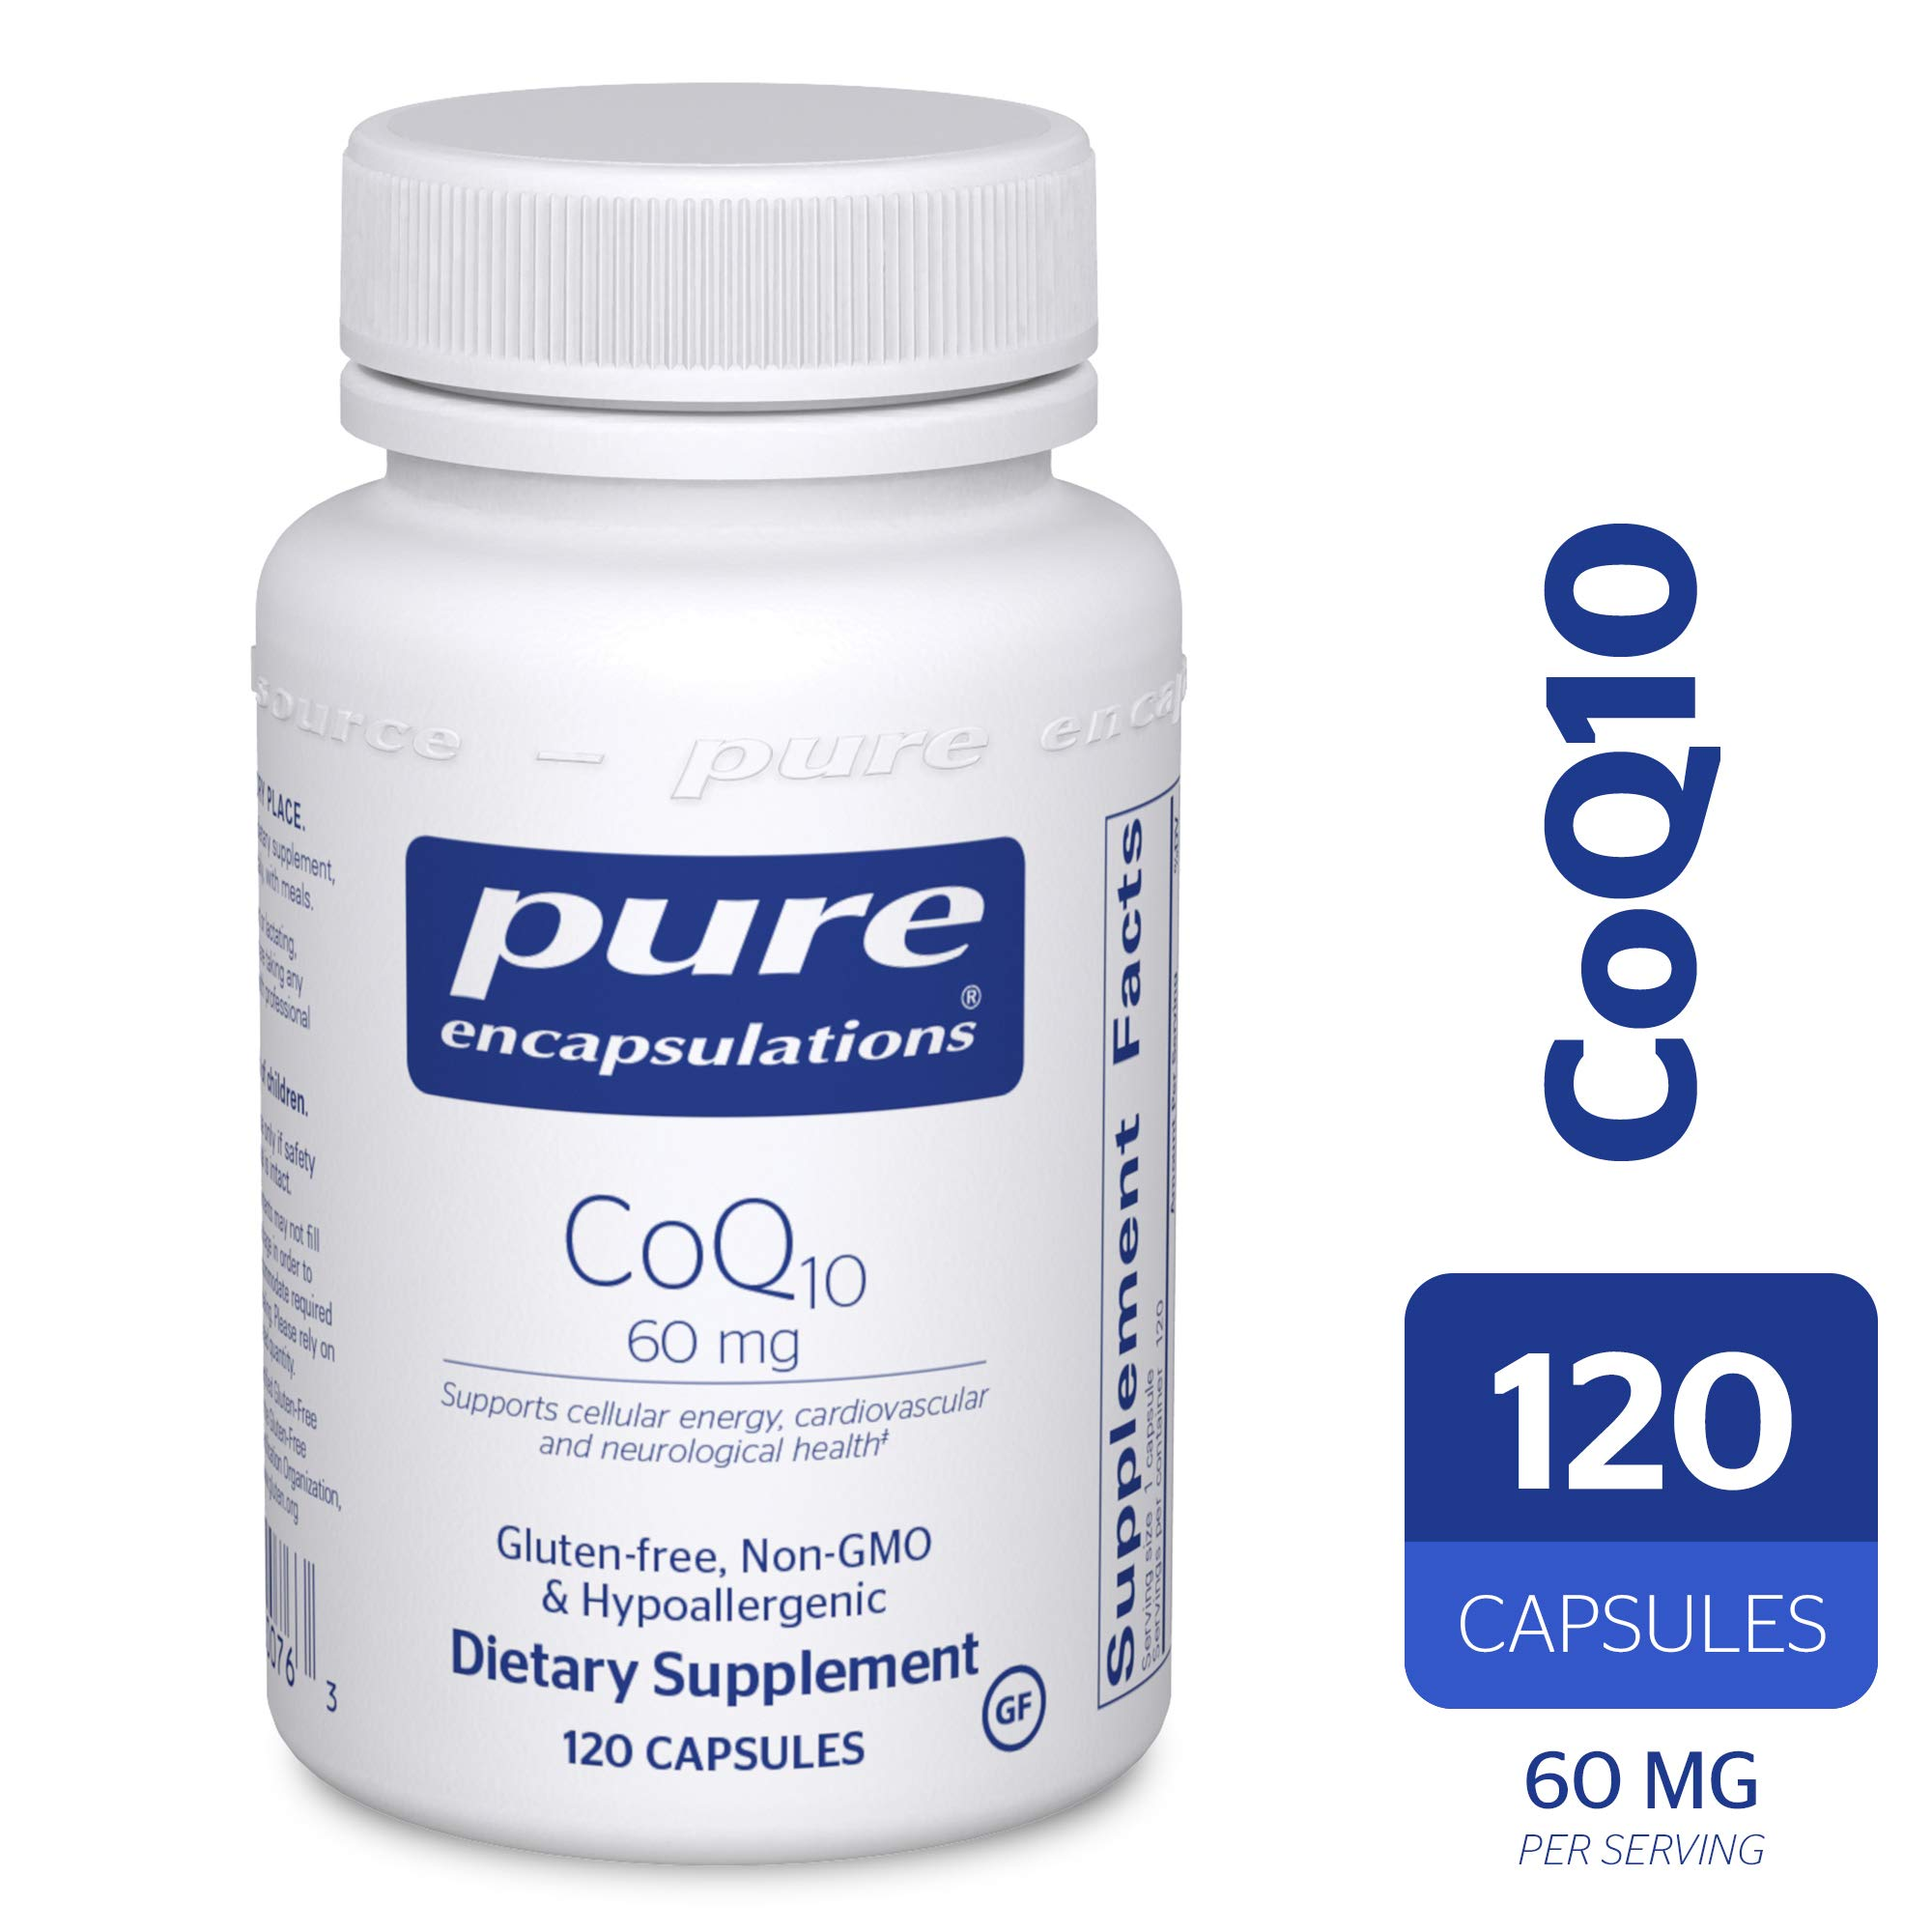 Pure Encapsulations - CoQ10 60 mg - Hypoallergenic Coenzyme Q10 Supplement - 120 Capsules